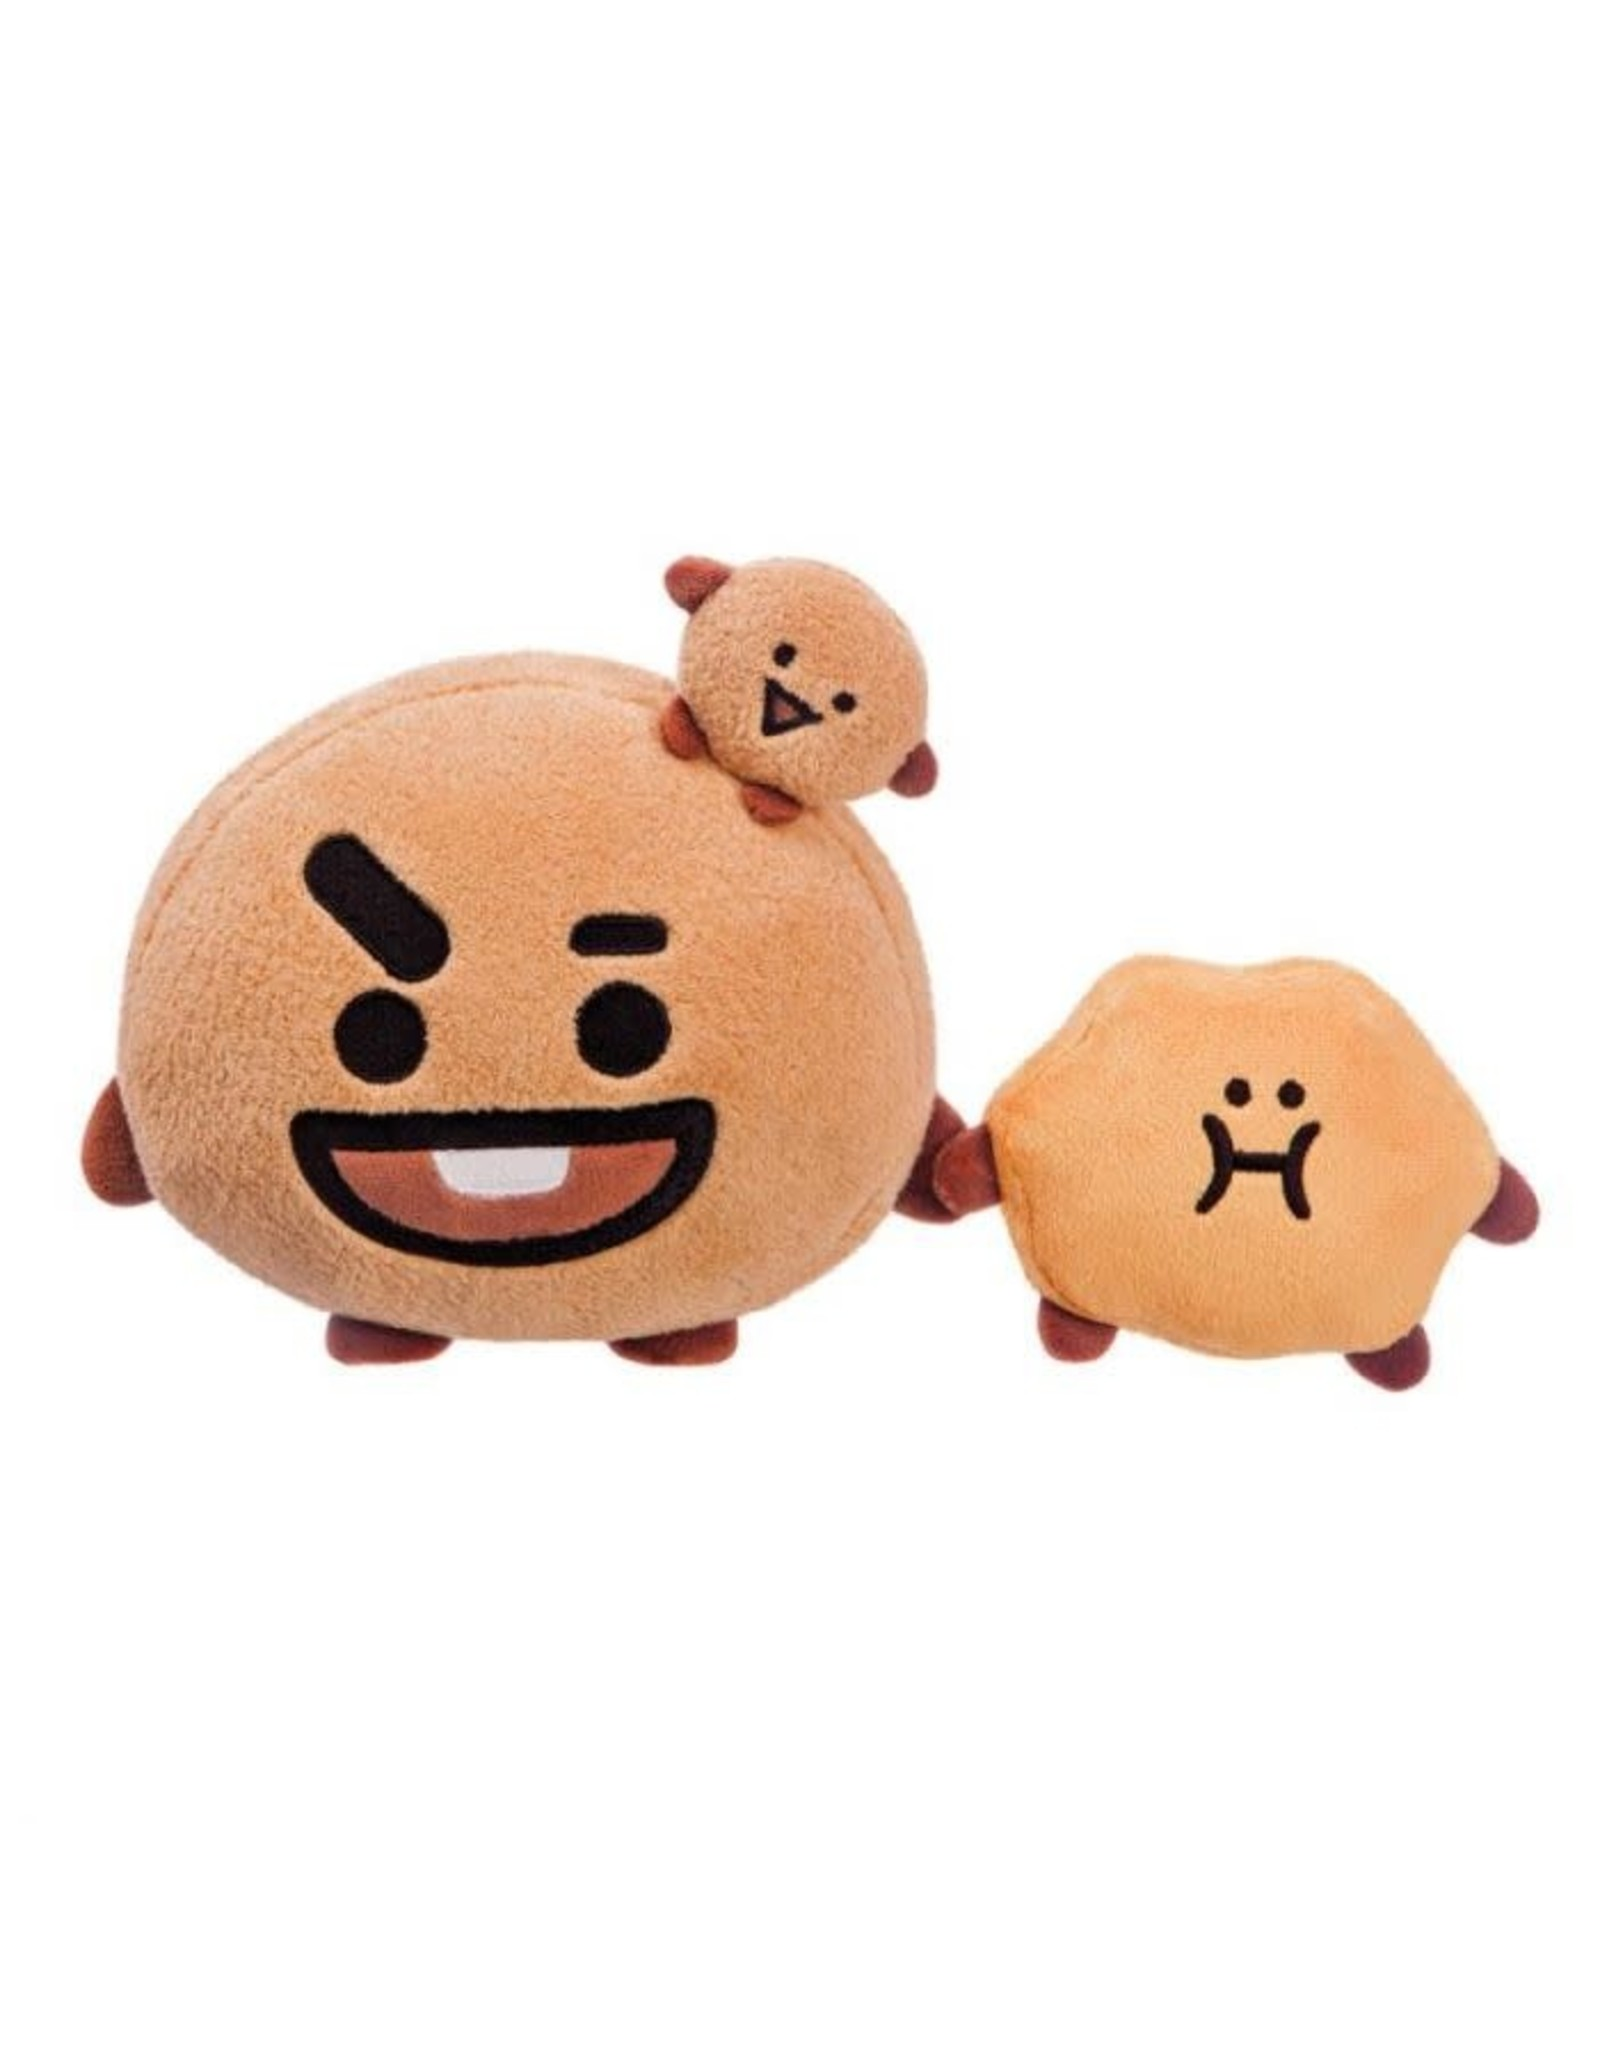 BT21 BT21 - SHOOKY 7inch (1)